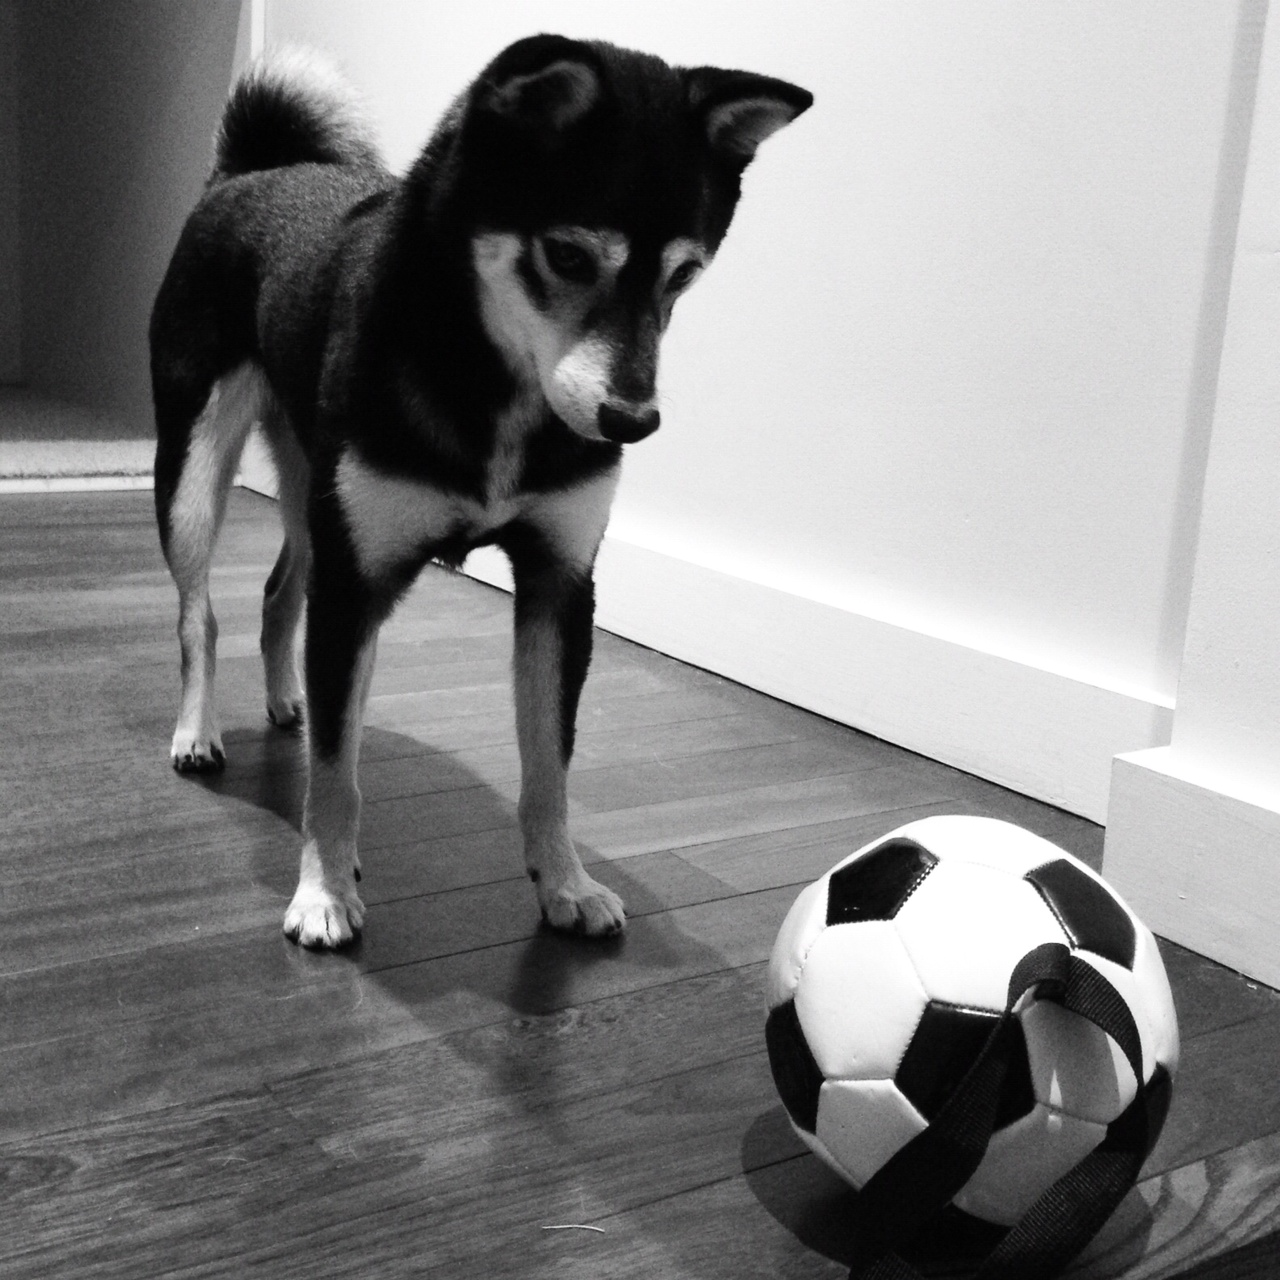 Emi and her soccer ball